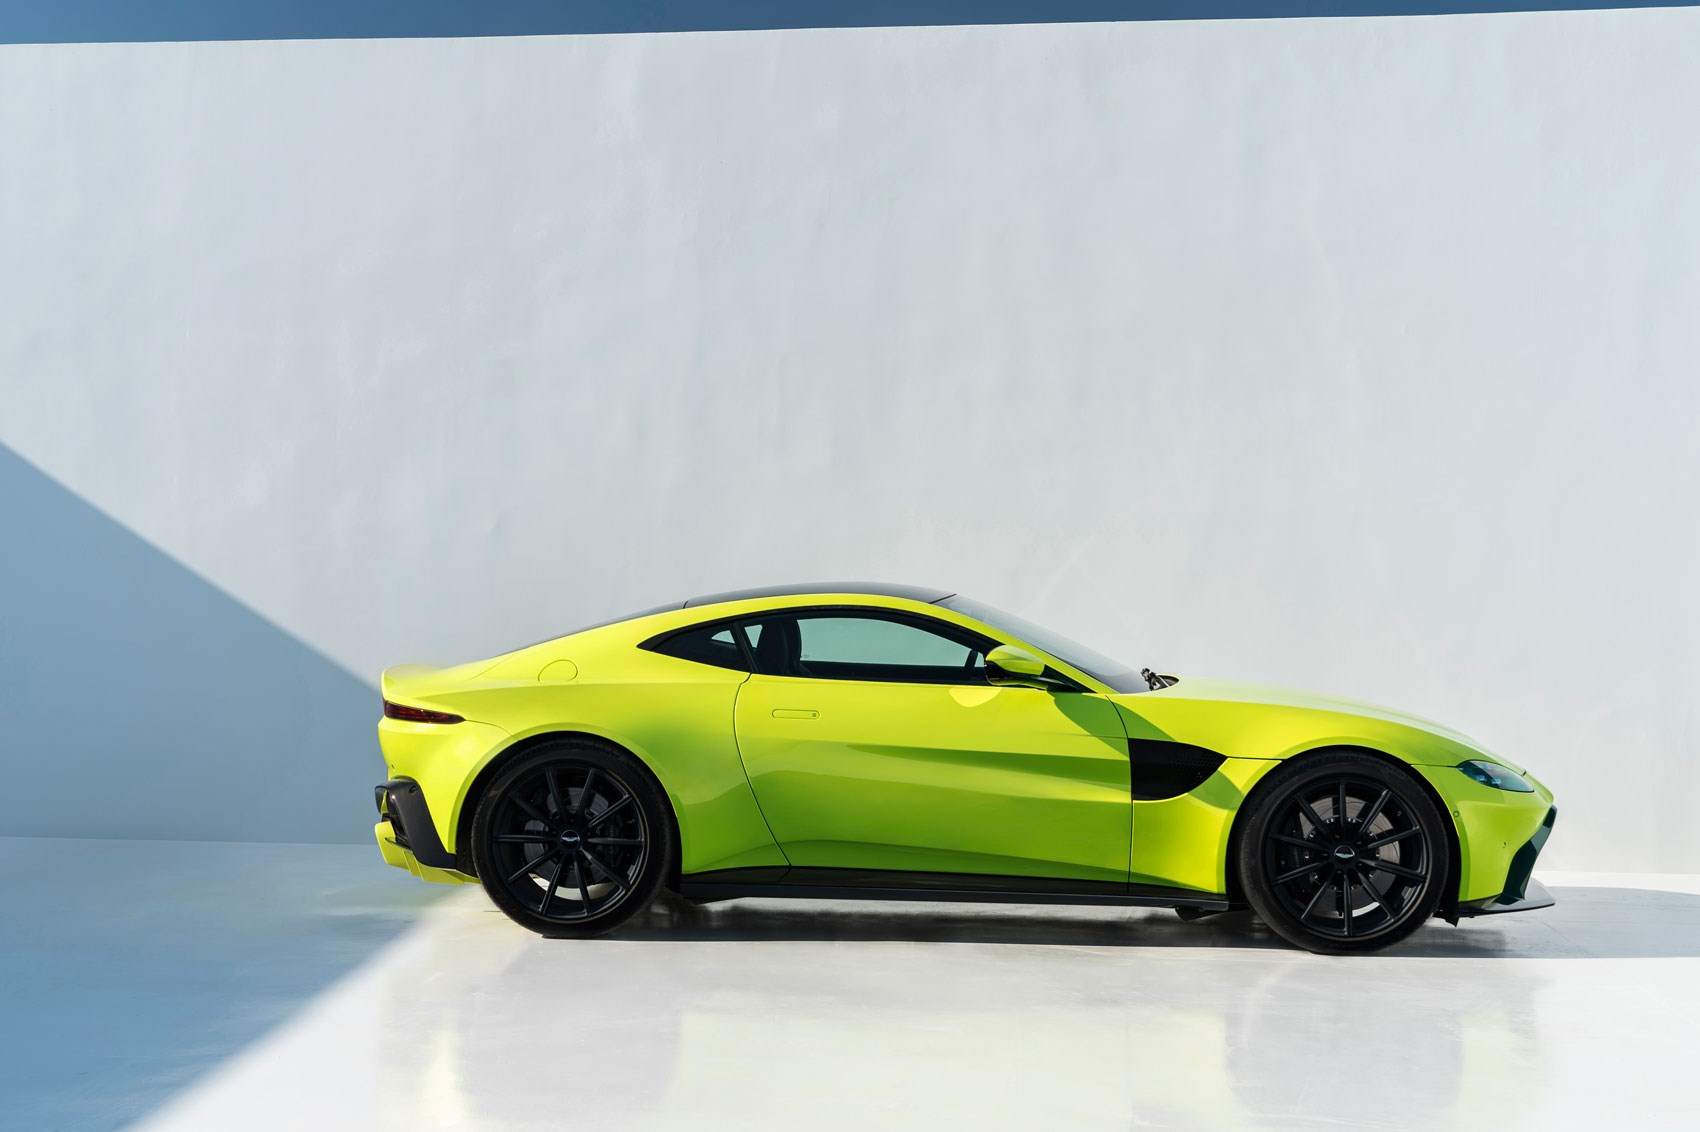 The New Aston Martin Vantage Revealed In Pictures CAR Magazine - Lease aston martin vantage